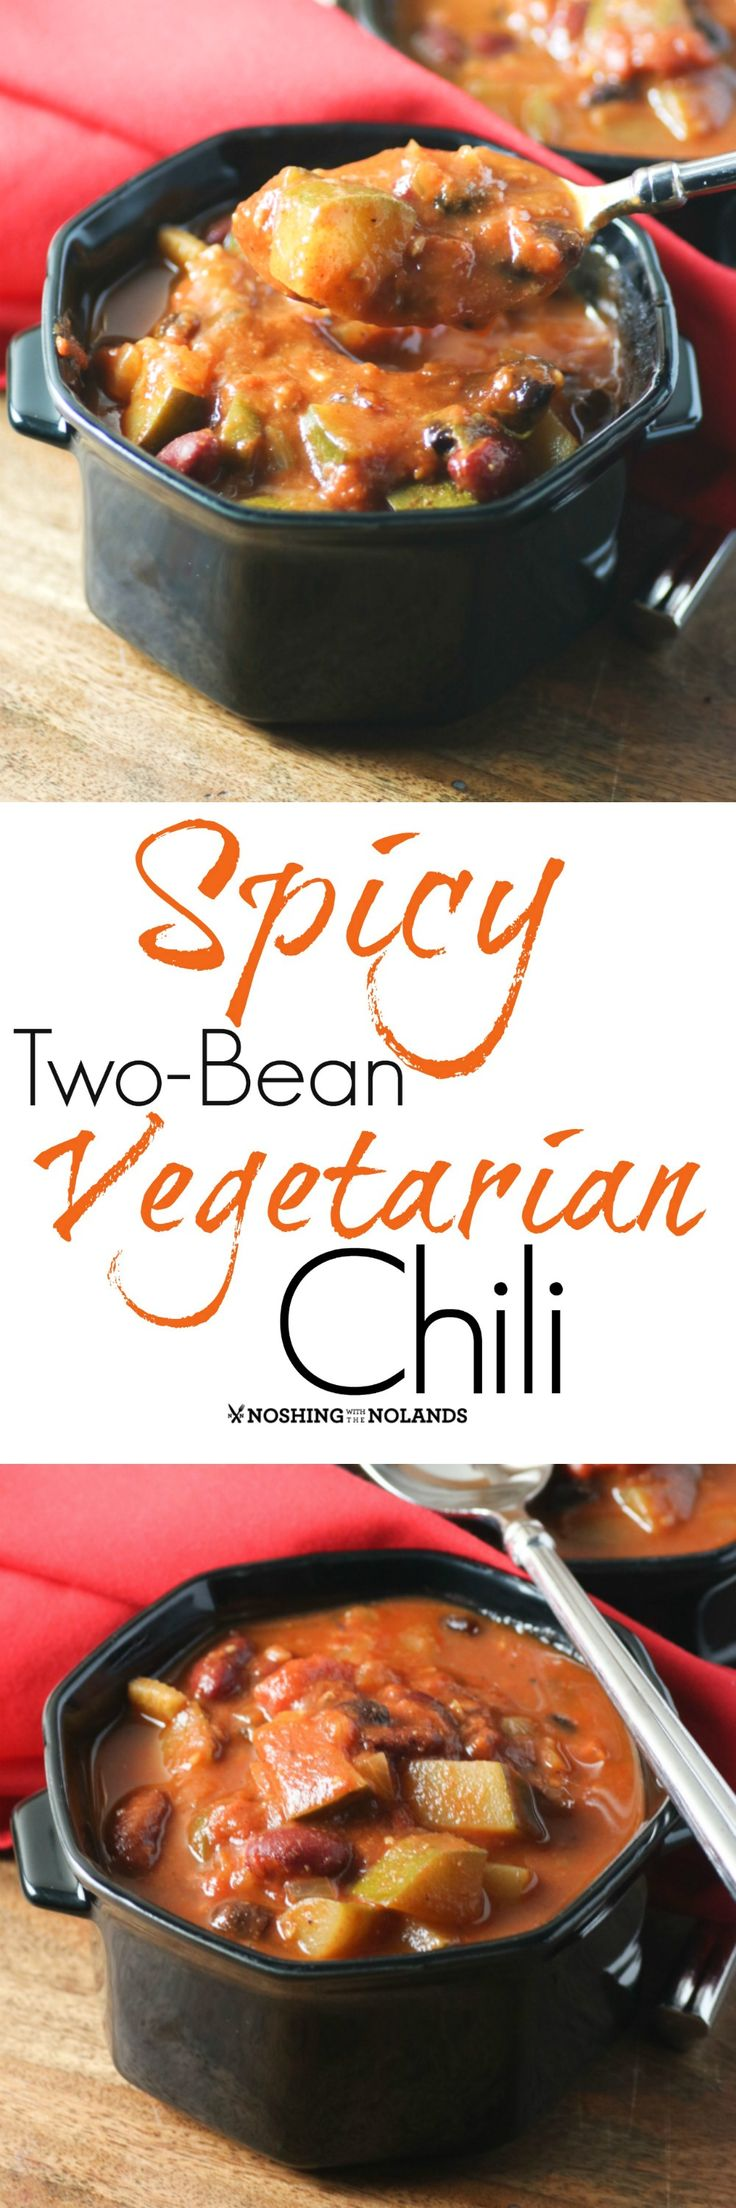 Spicy Two-Bean Vegetarian Chili by Noshing With The Nolands is a satisfying and hearty dish that you won't even miss the meat!